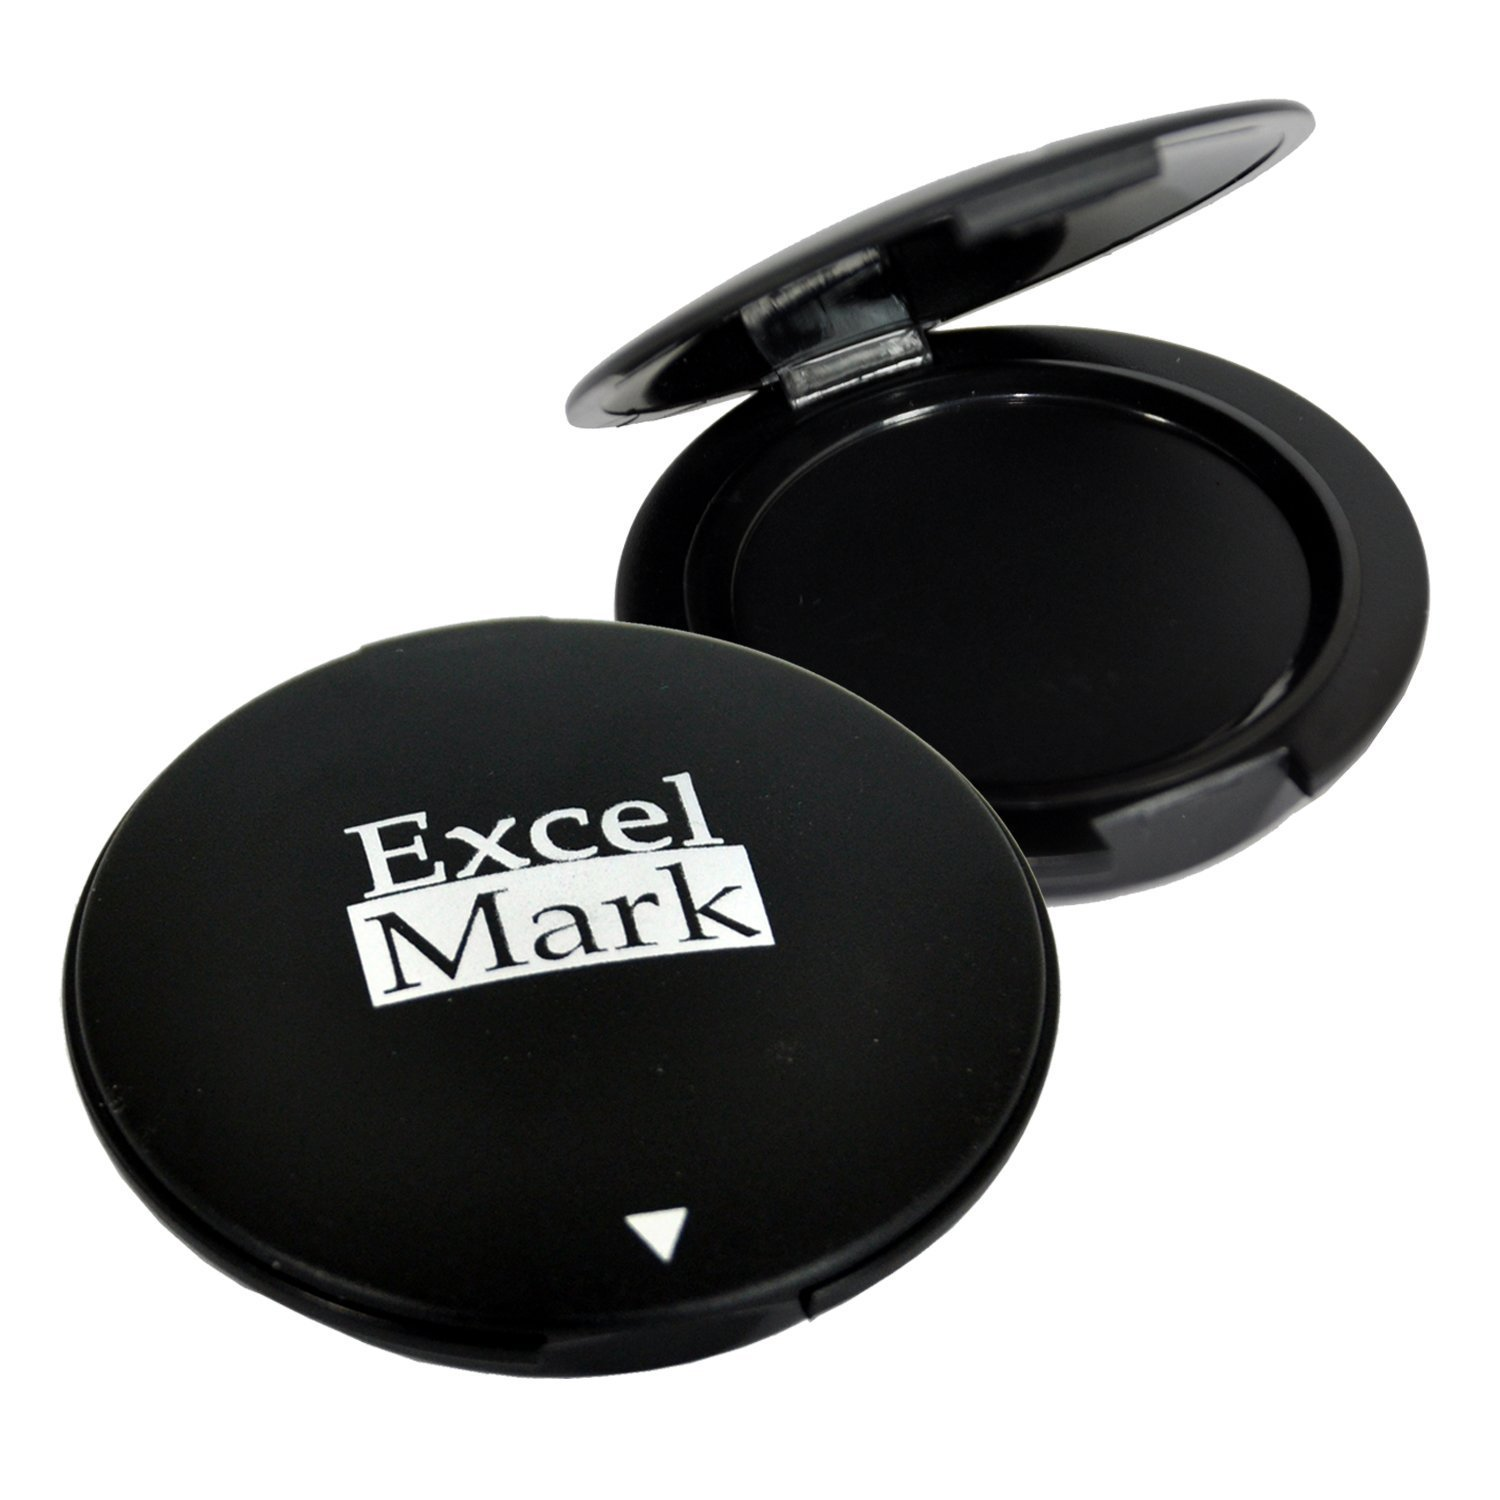 ExcelMark Inkless Thumbprint Pad - For Identification and Security ID - 10 Pack